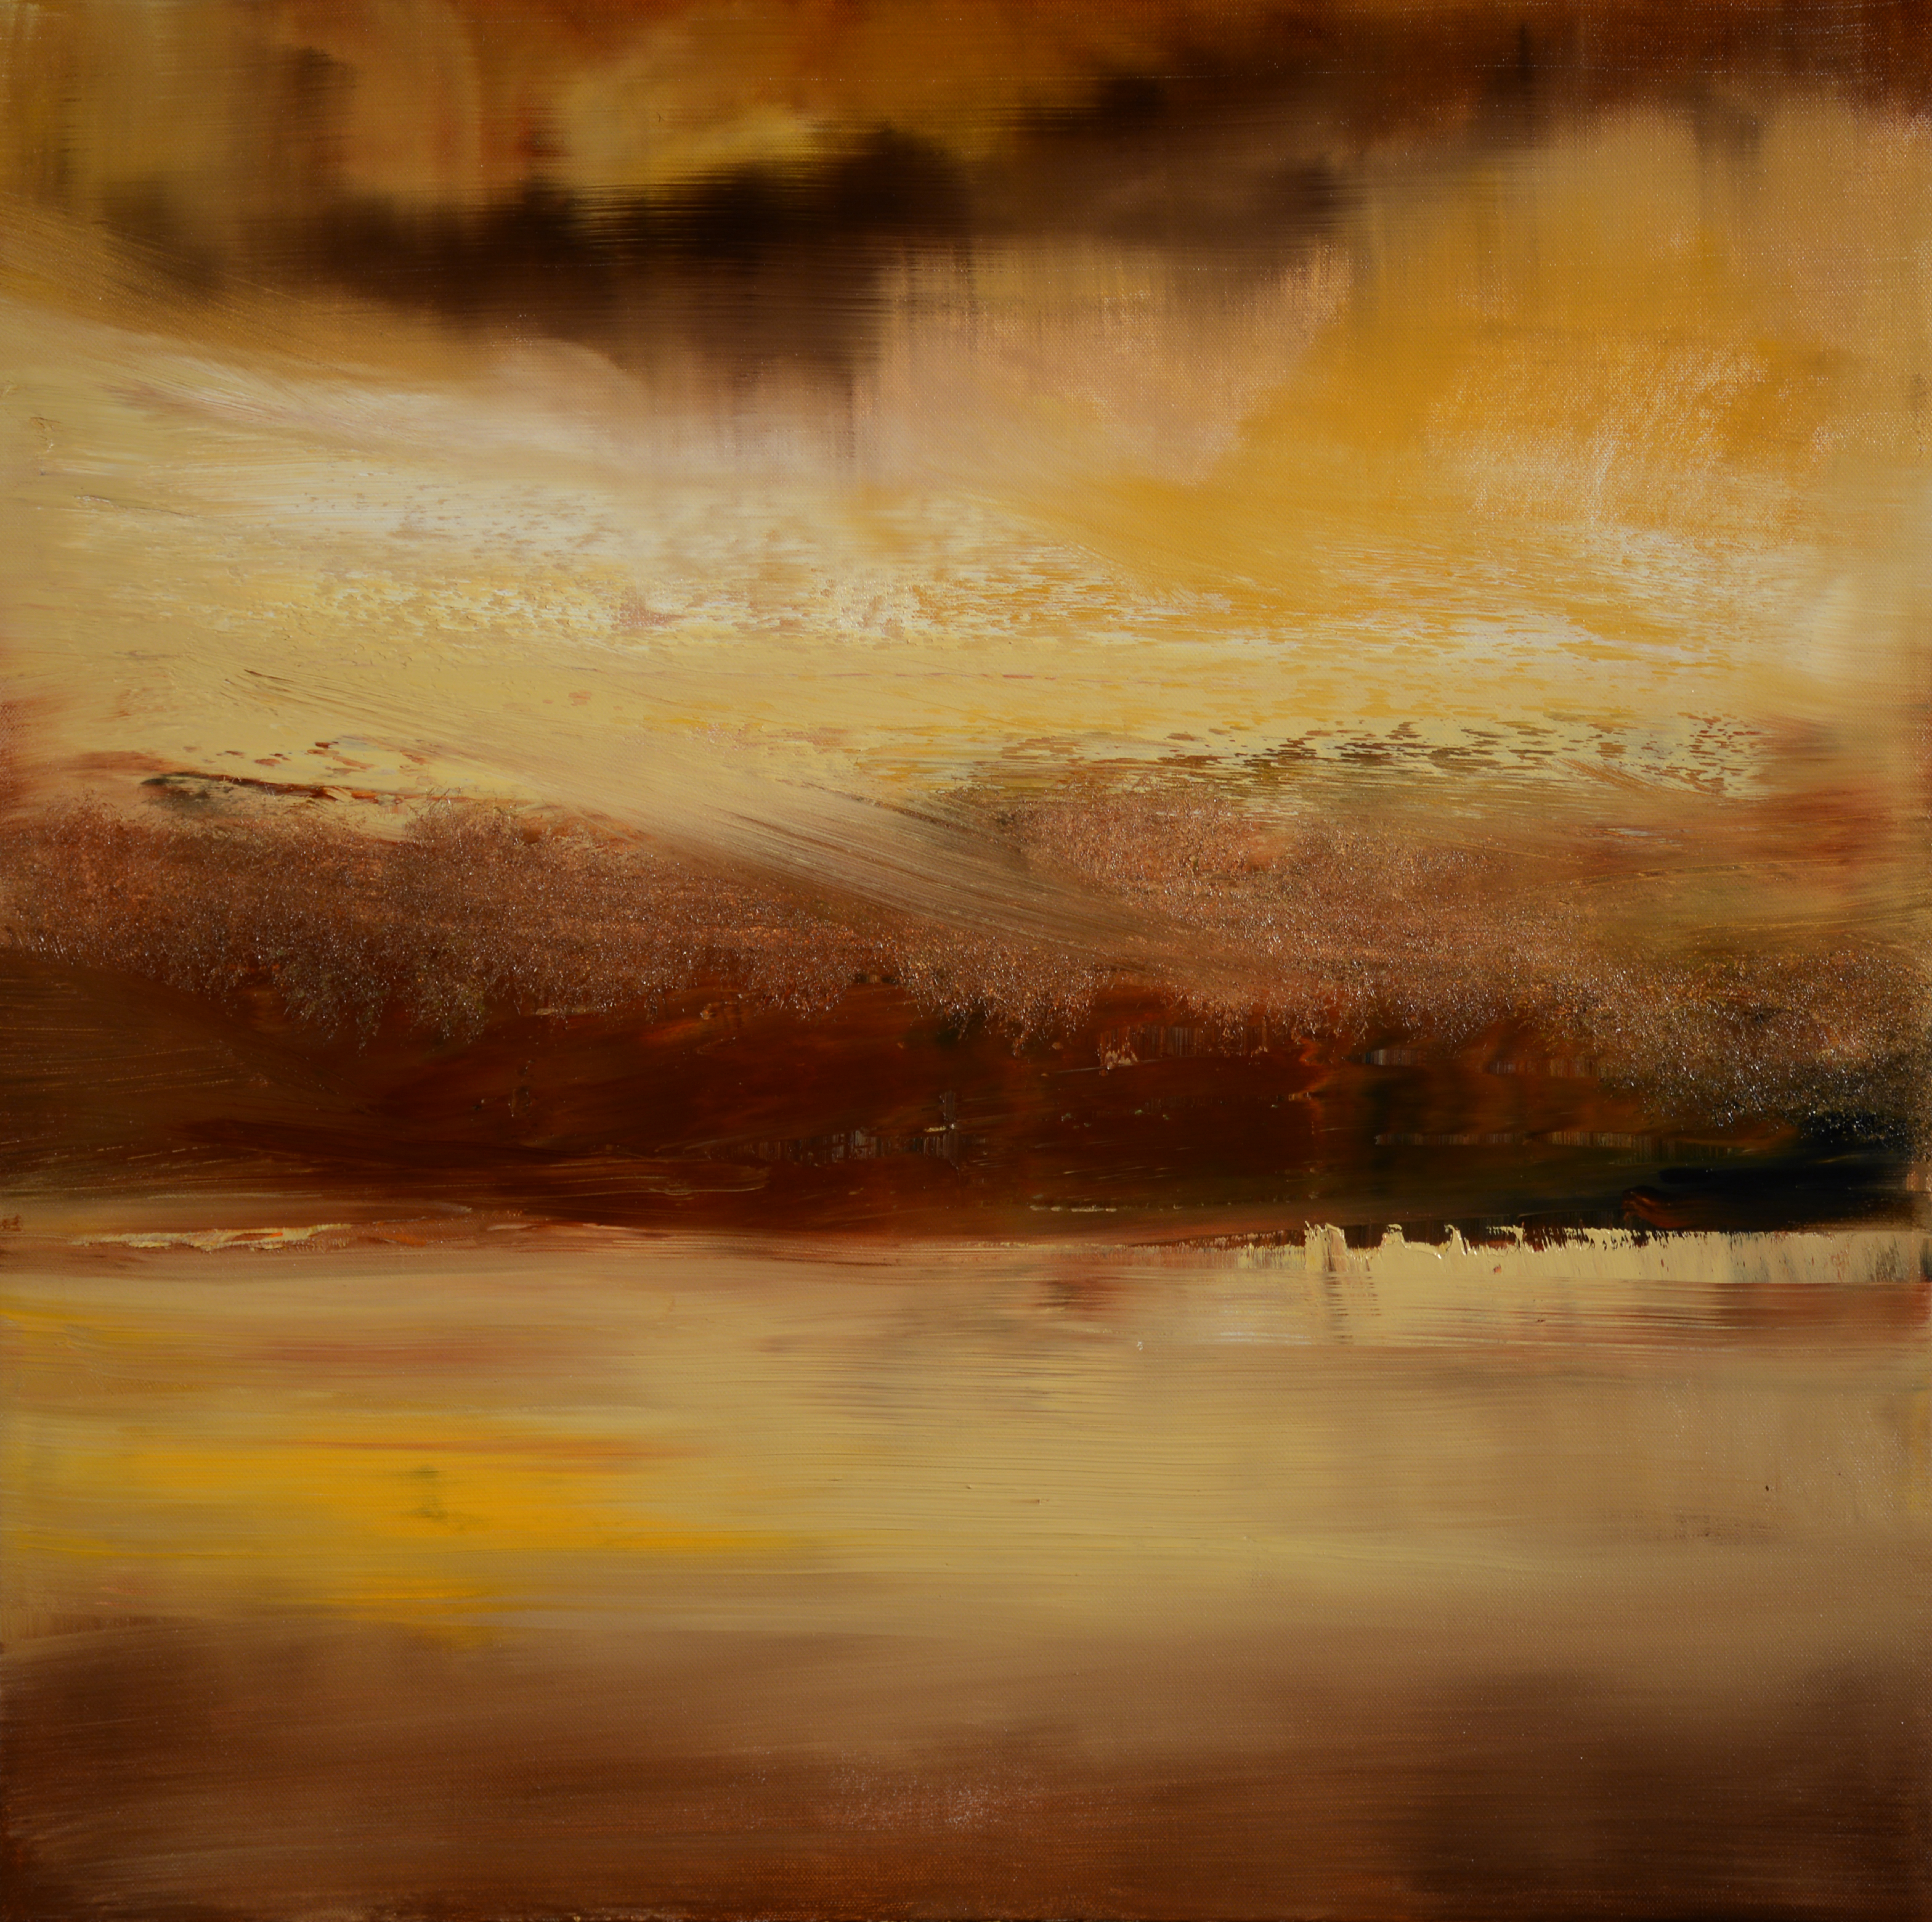 across-the-bay-before-the-rain | Maurice Sapiro